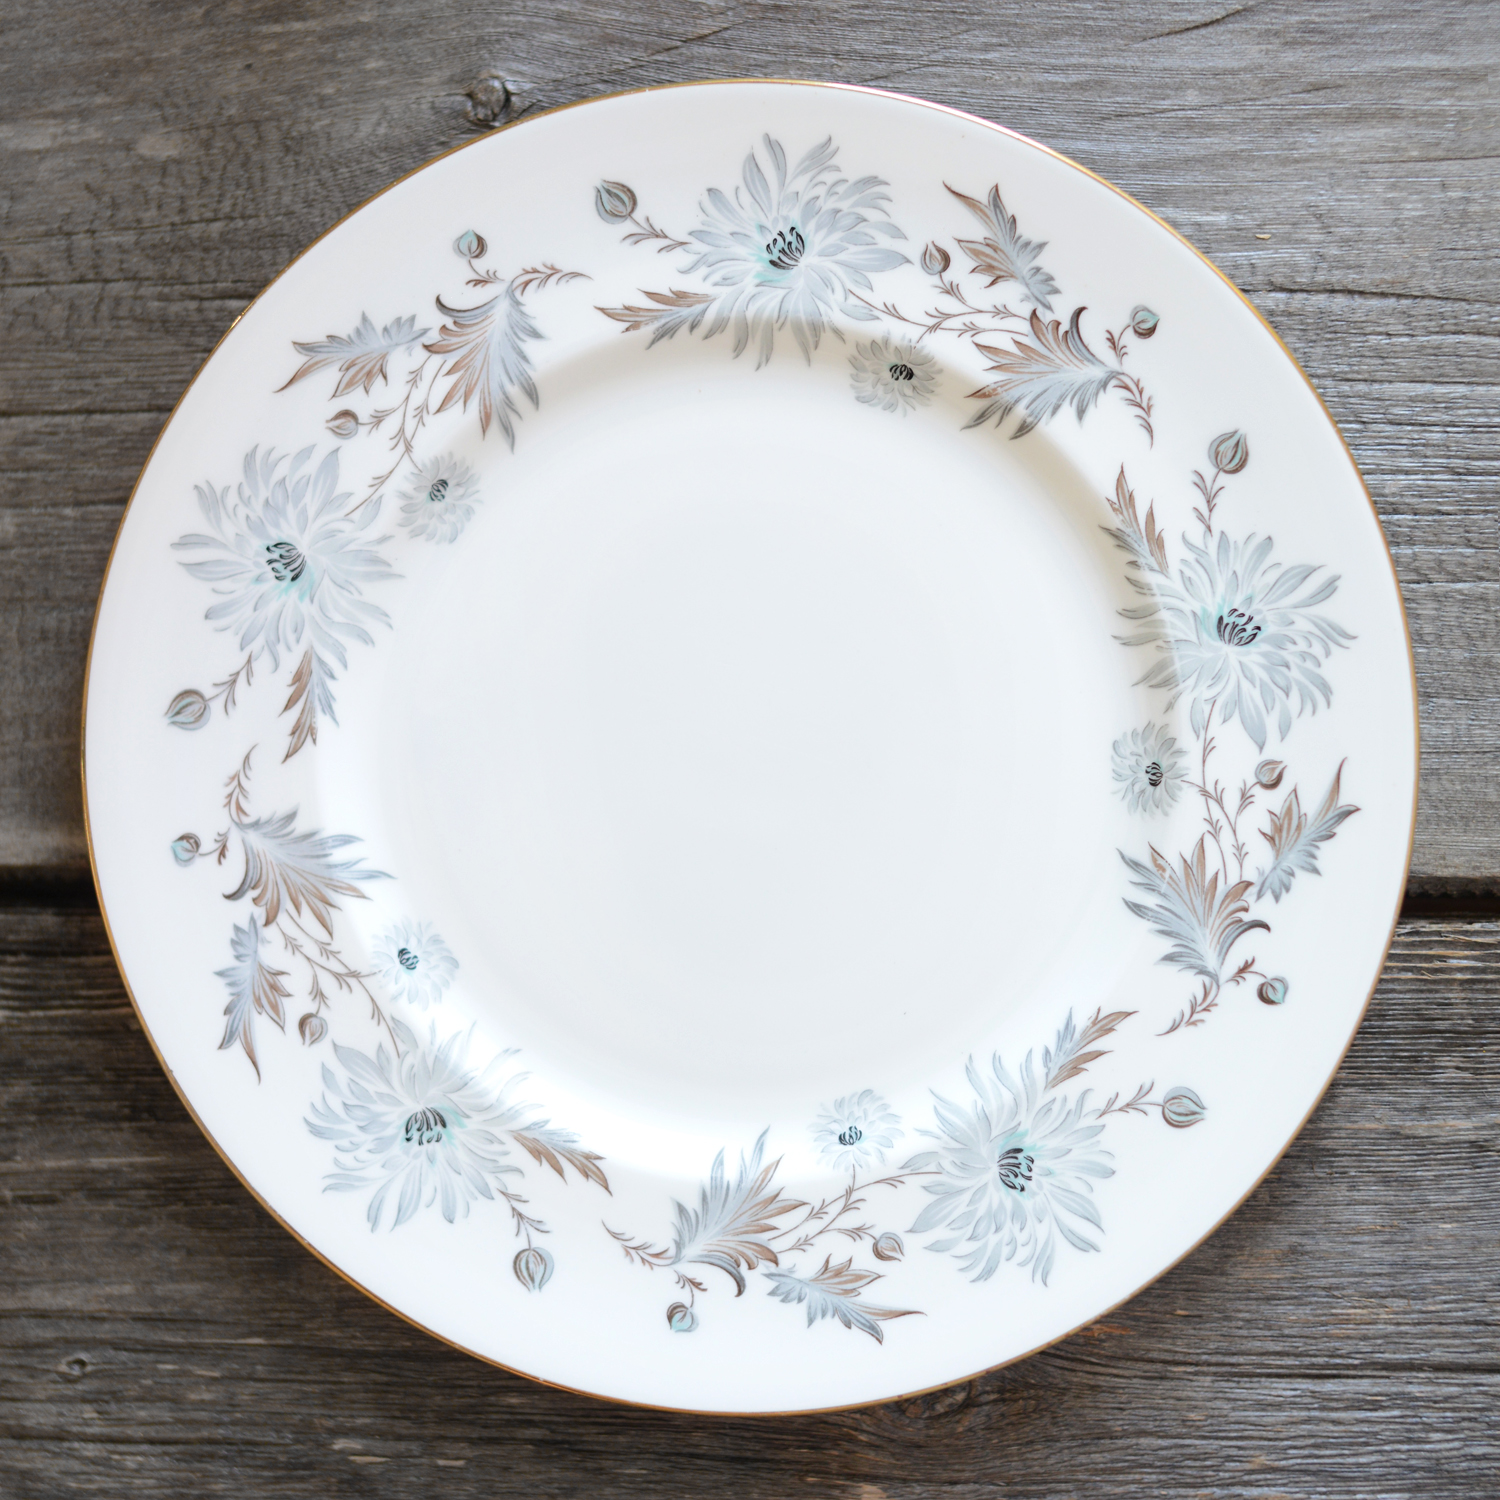 malling dinner plate - 6 available